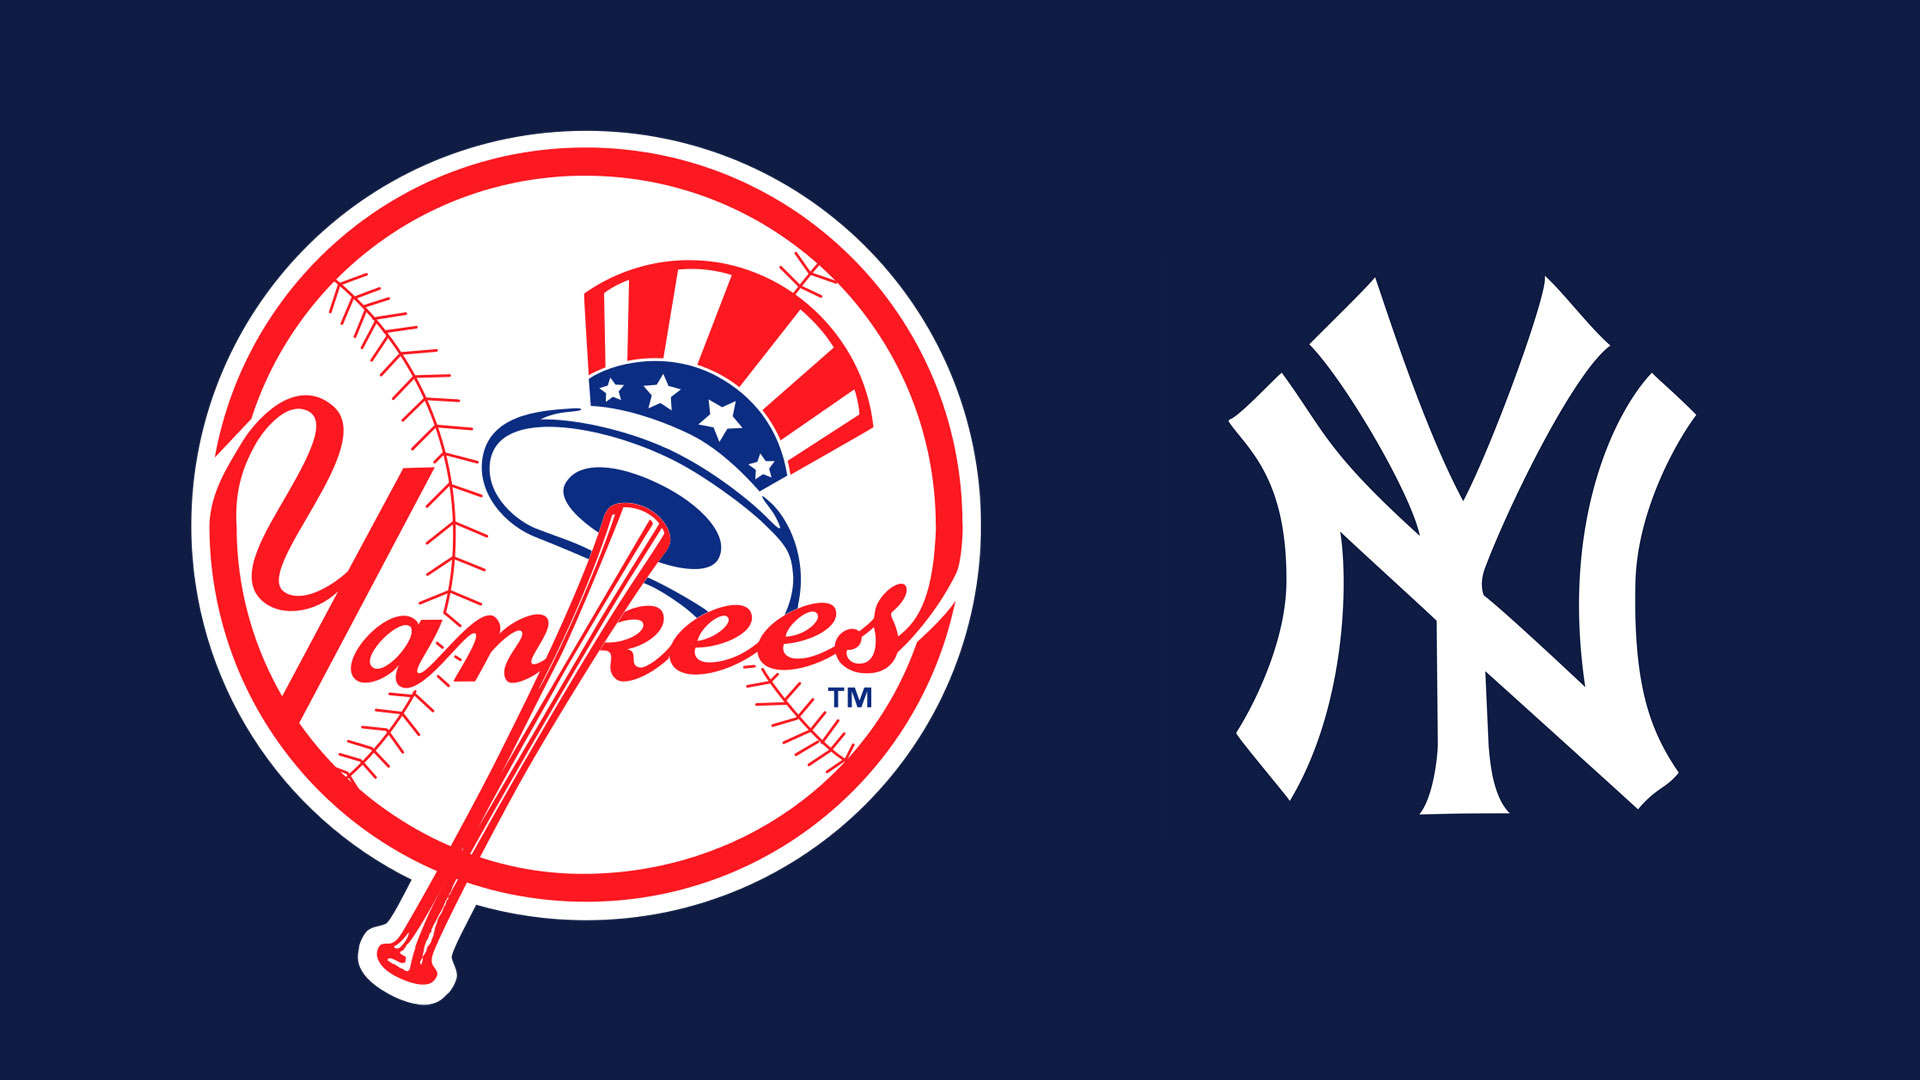 The New York Yankees are an American professional baseball team based in the New York City borough of the Bronx The Yankees compete in Major League Baseball MLB as